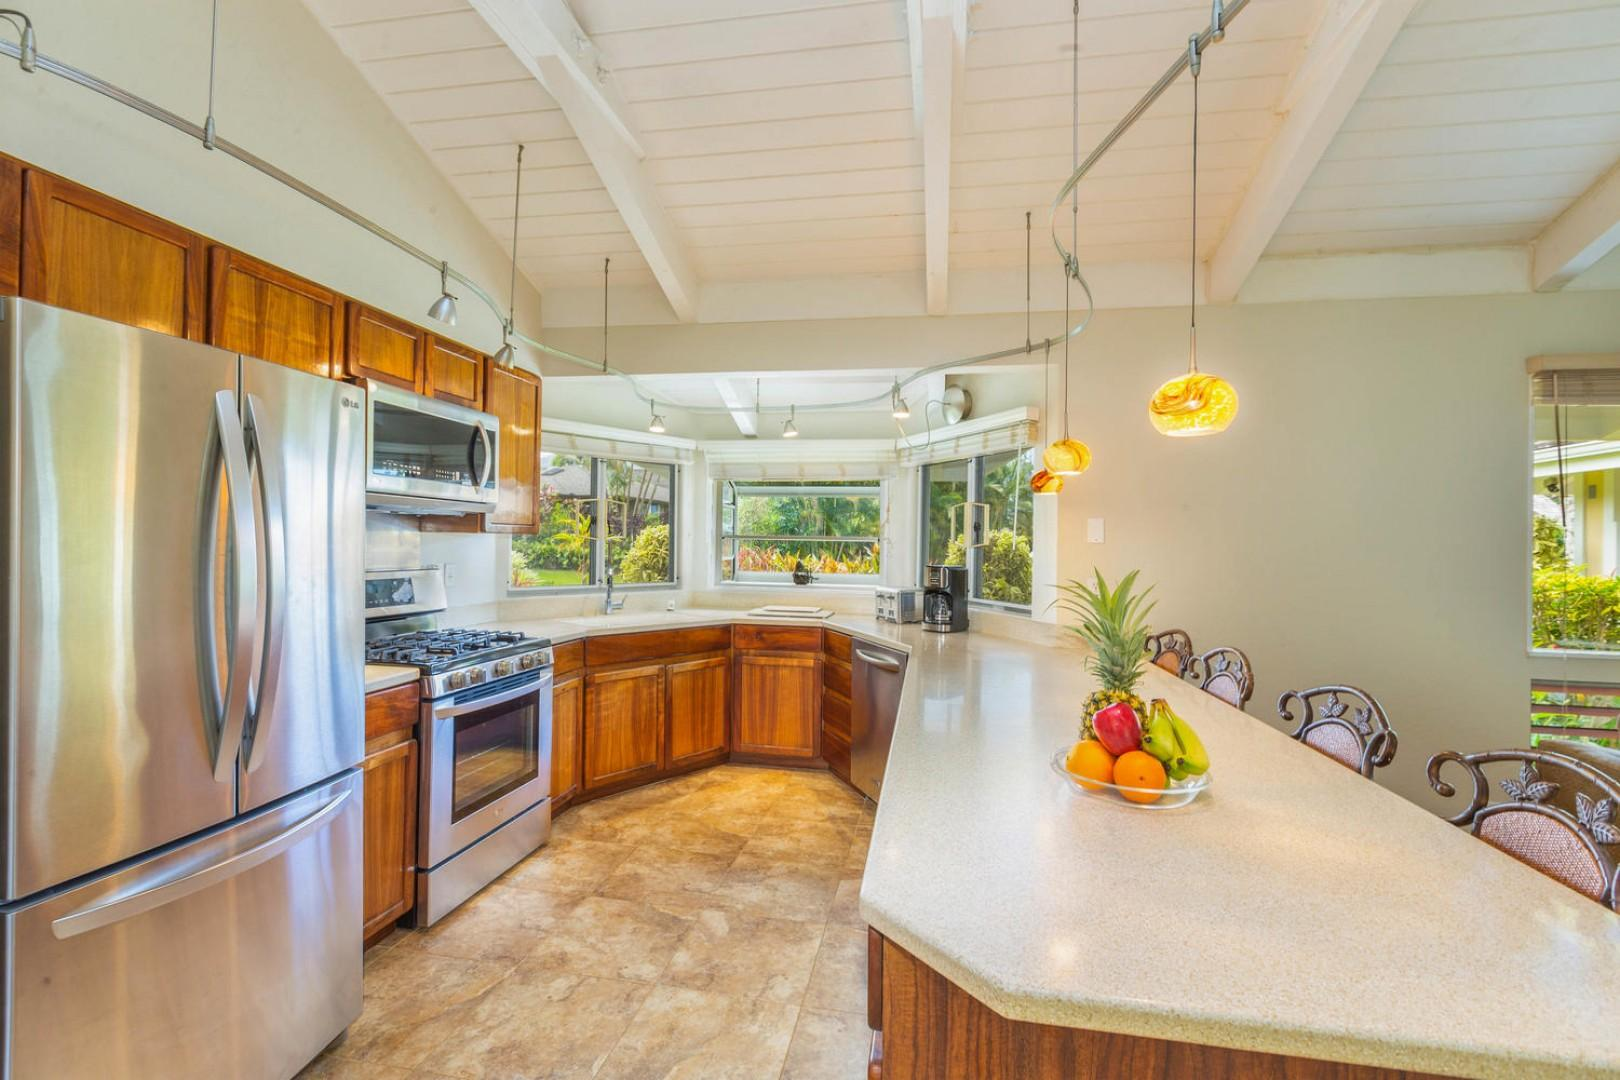 Upgraded kitchen with high-quality appliances